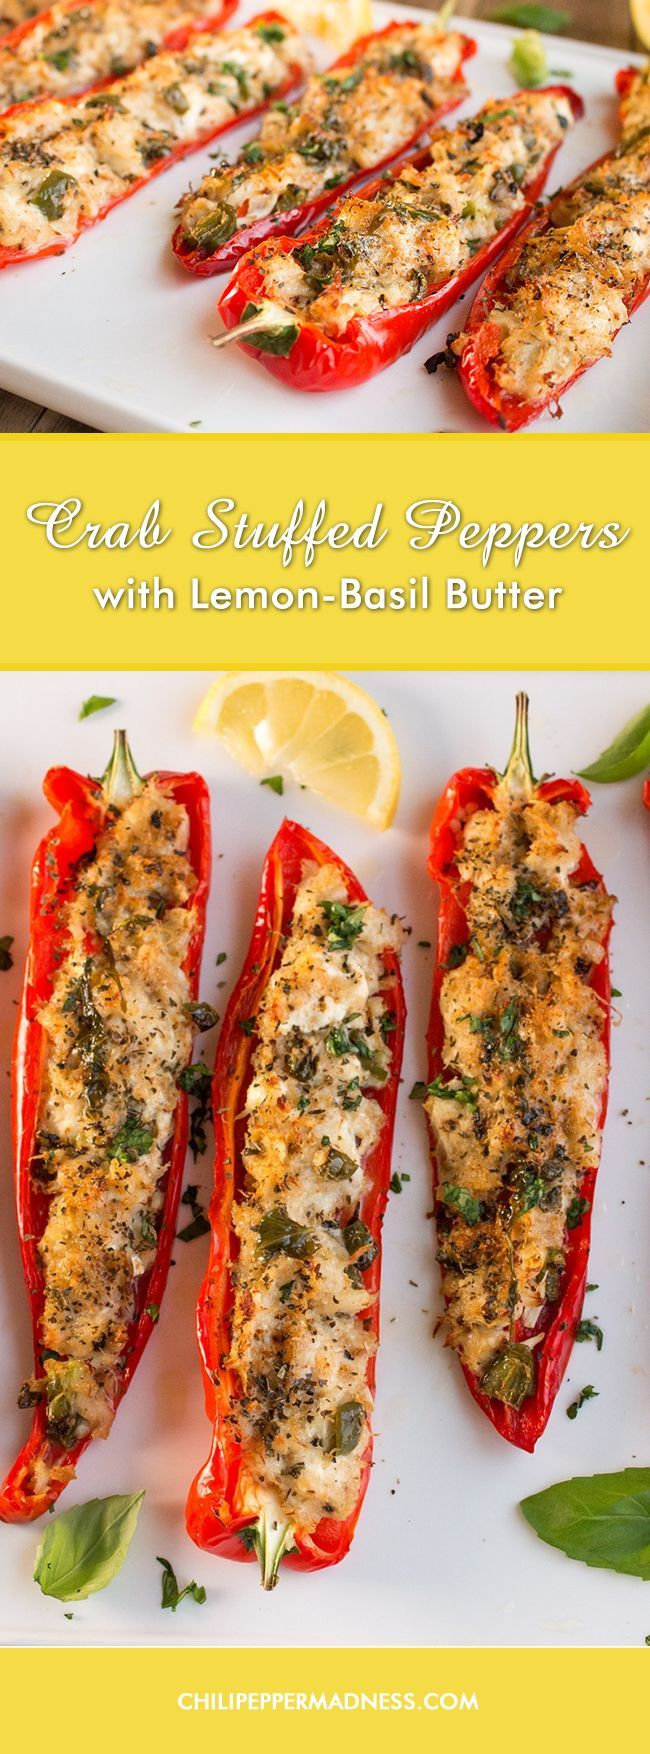 Patty and I are still enjoying the crab we caught in the Chesapeake Bay with this recipe for sweet peppers stuffed with succulent crab meat, goat cheese and Parmesan, then baked to perfection. So glad we caught so much crab!